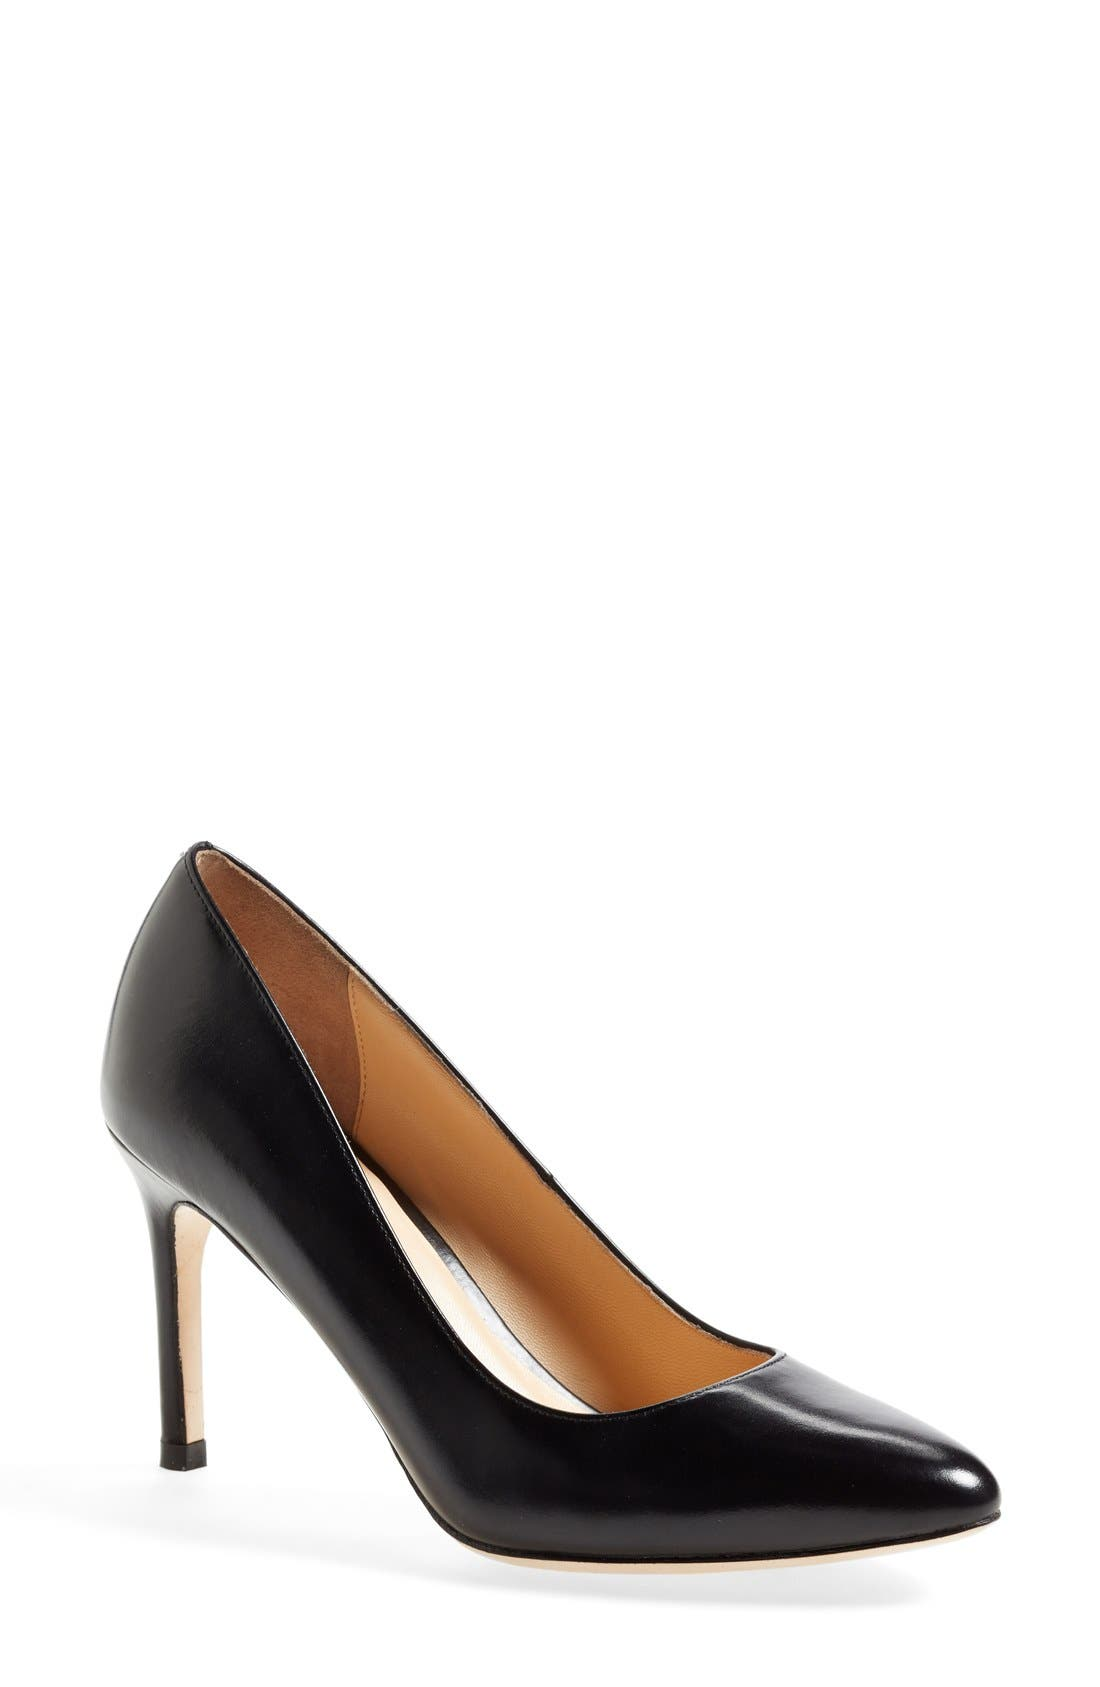 Outlet Online Shop Womens Shoes Cole Haan Bethany Pump 85 Black Patent